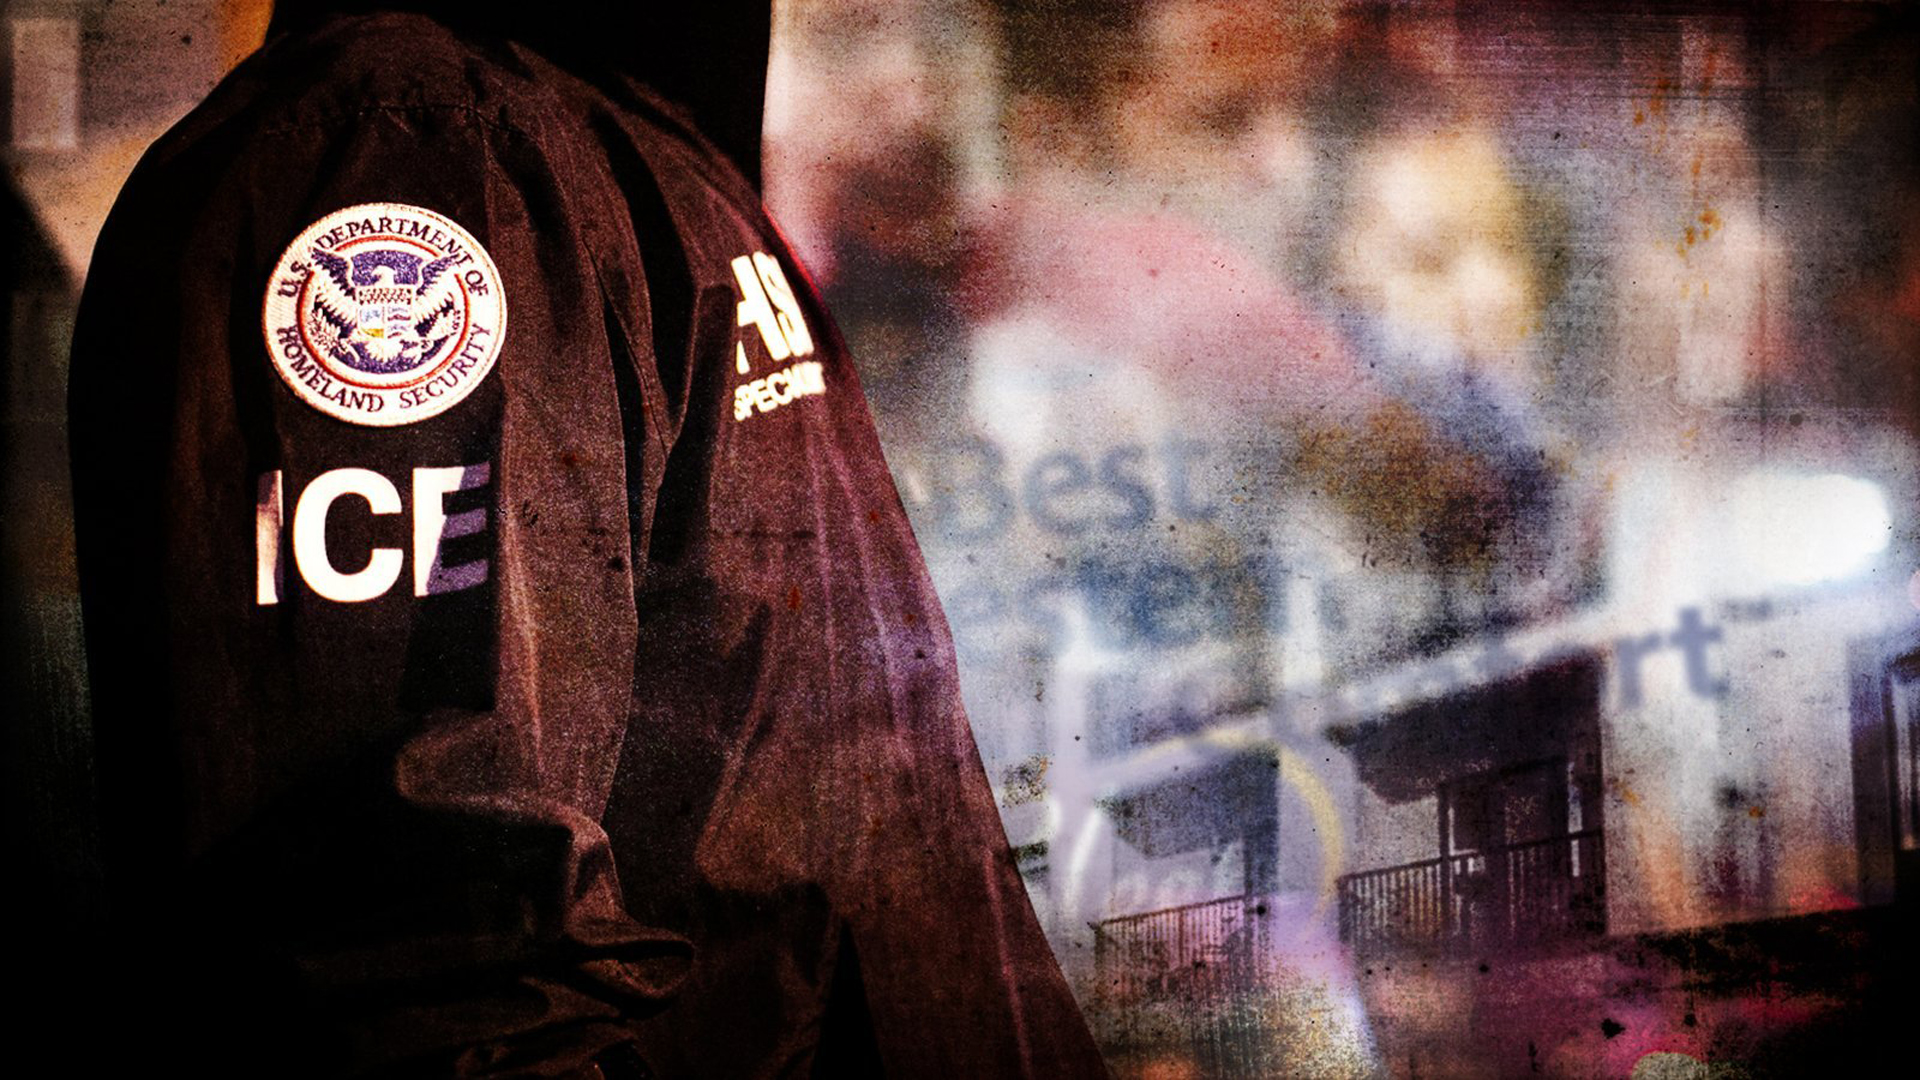 A photo illustration shows an ICE agent. (Credit: CNN)